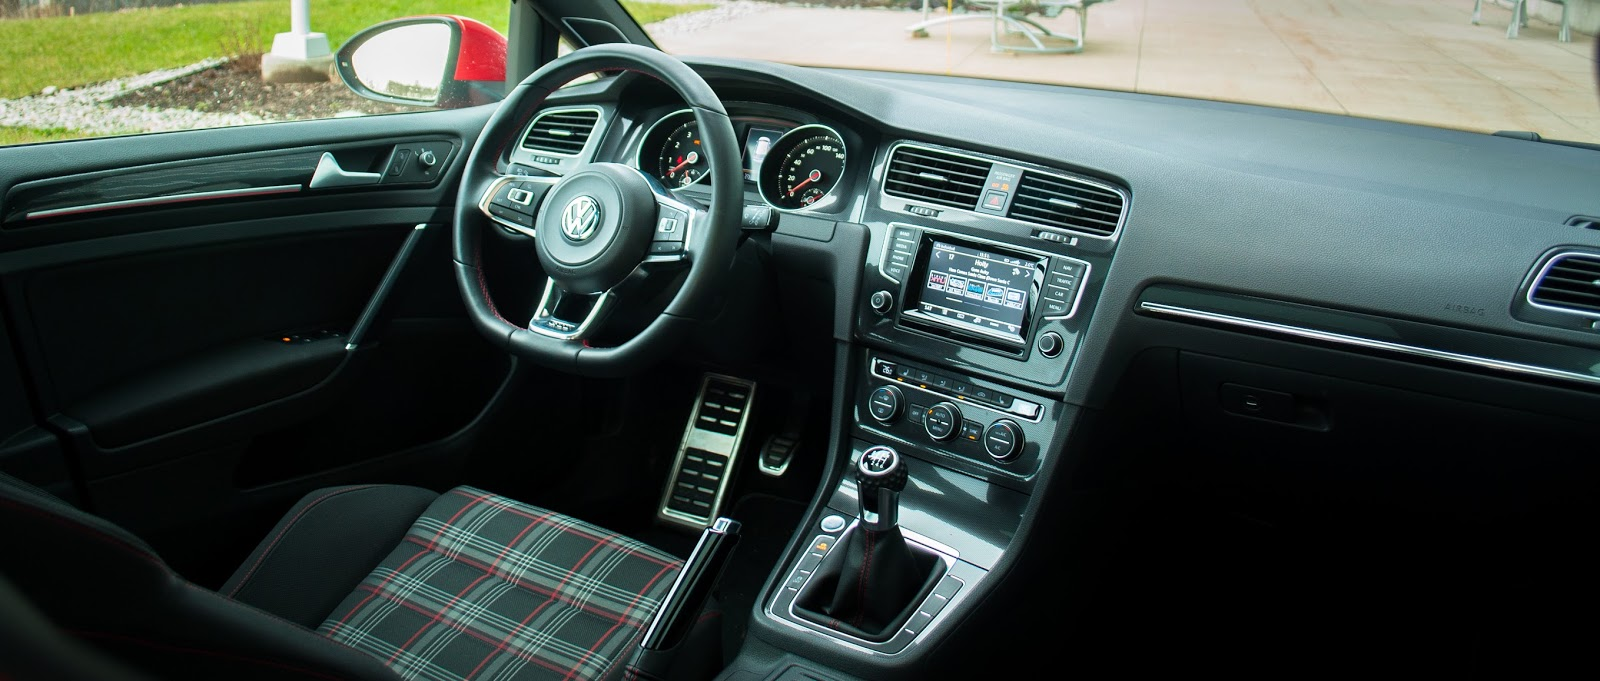 2015 Volkswagen Golf GTI interior